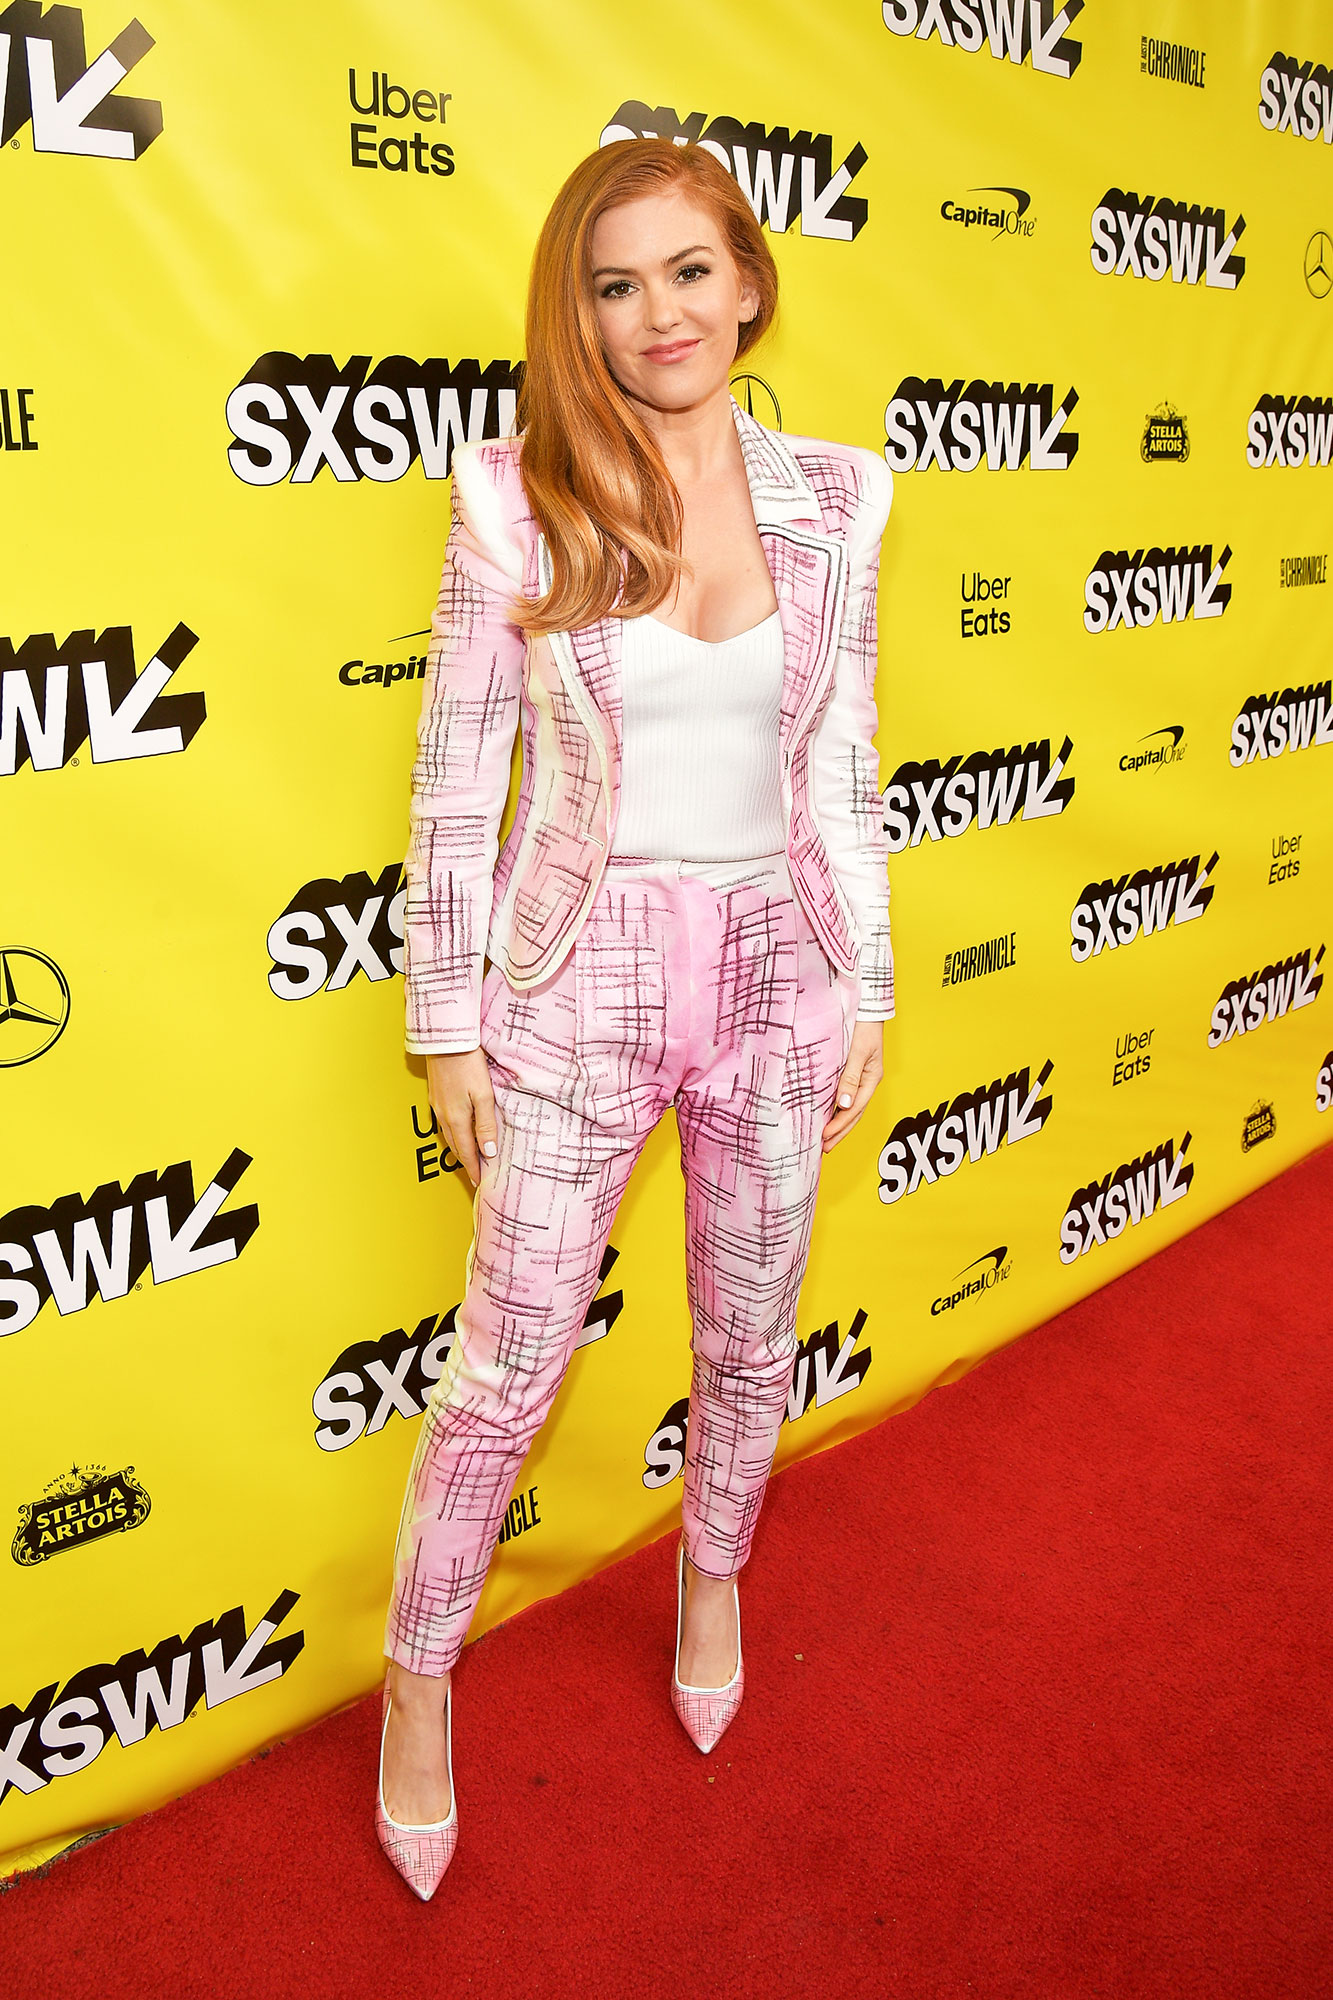 The Stars Bring Their Beauty and Style A-Game to SXSW - The star was pretty in pink at the Beach Bum screening on Saturday, March 9, in her printed Moschino suit.